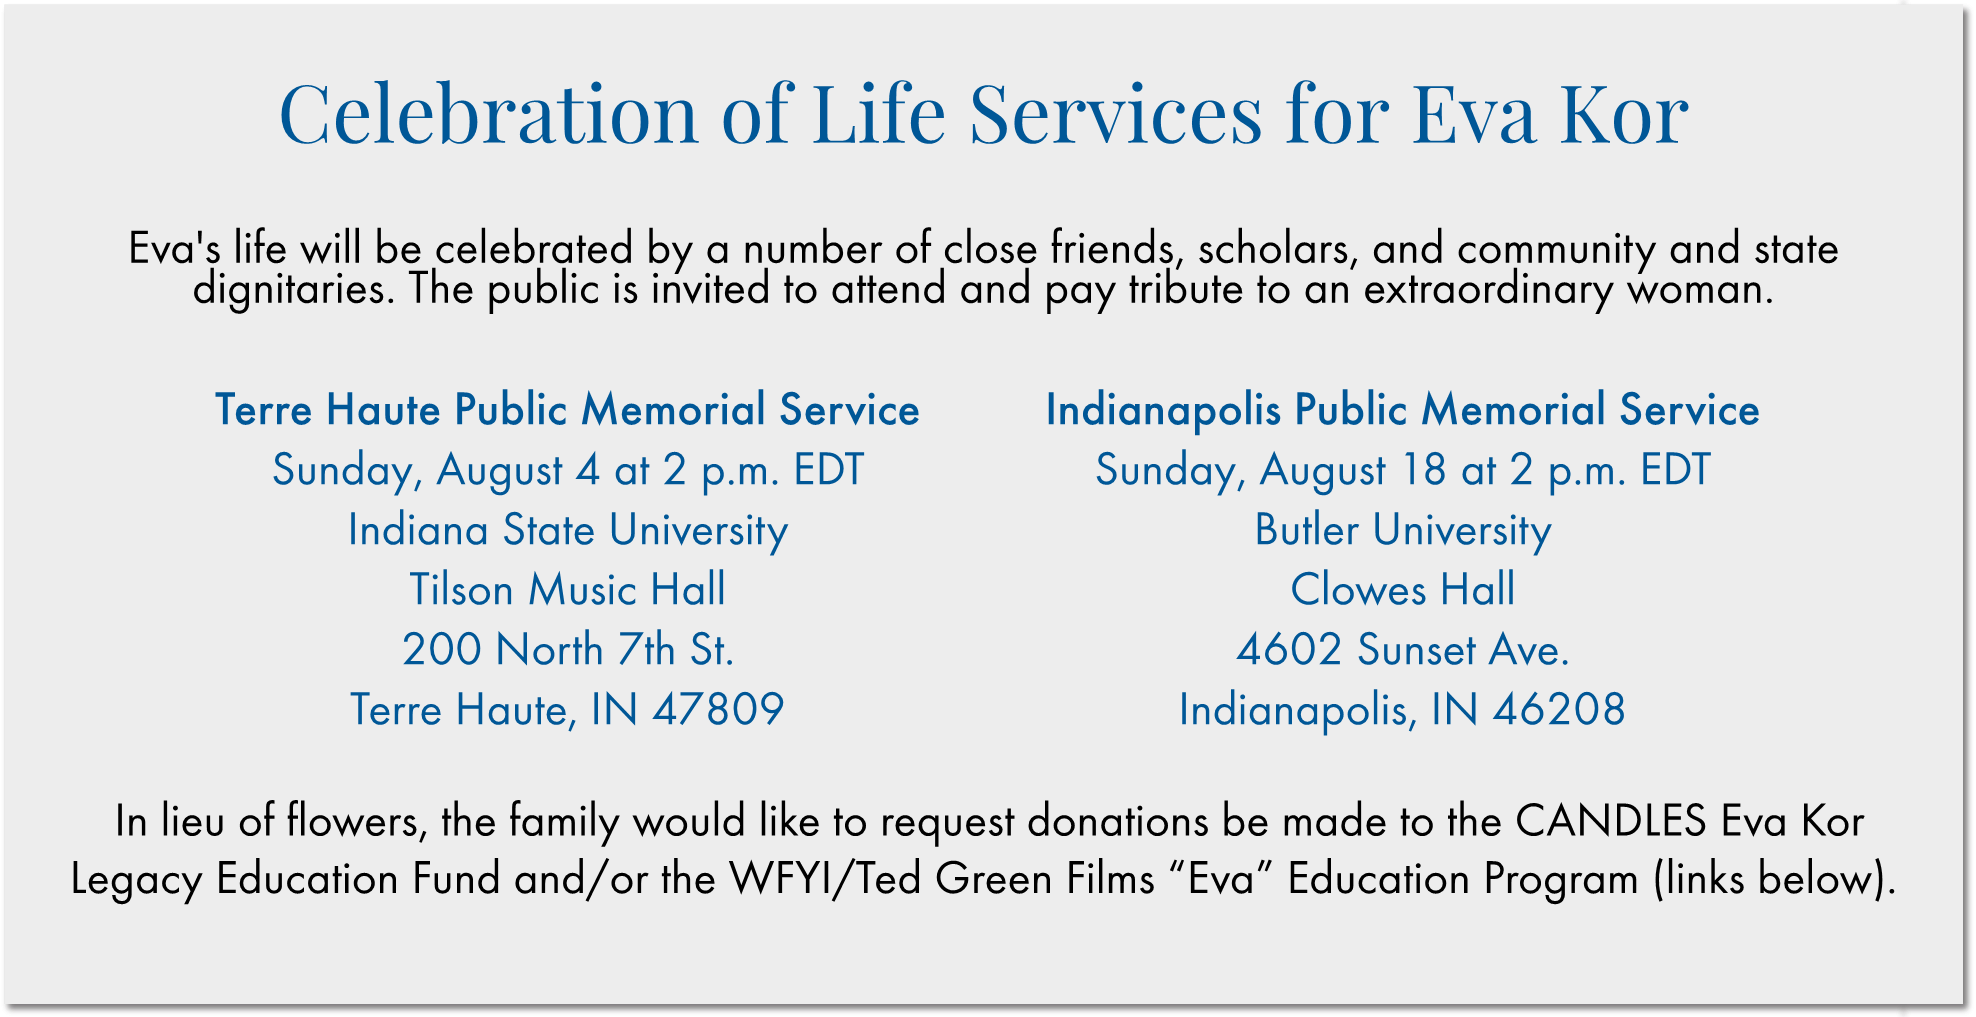 """Memorial Services for Eva Kor  The funeral and visitation for Eva will be held at DeBaun Funeral Home in Terre Haute, IN. The visitation is scheduled for Saturday, July 13th from 4:00pm until 8:00pm EDT. The funeral will be at 10:00 am EDT on Sunday, July 14th. Interment at Highland Lawn Cemetery will follow the service at 11:30 am. However, due to limited seating, the family encourages the public to attend one of the two memorial services in lieu of the funeral. This will allow the funeral home to comfortably accommodate family and close friends during this particular time. Information about the public memorial services is provided below.  DeBaun Funeral Home 85 East Springhill Dr. Terre Haute, IN 47802  Terre Haute Public Memorial Service: Sunday, August 4th at 2:00pm EDT Indiana State University Tilson Music Hall 200 North 7th St. Terre Haute, IN 47809  Indianapolis Public Memorial Service: Sunday, August 18th at 2:00pm EDT Butler University Clowes Hall 4602 Sunset Ave. Indianapolis, IN 46208  In lieu of flowers, the family would like to request donations be made to the CANDLES Eva Kor Legacy Education Fund and/or the WFYI/Ted Green Films """"Eva"""" Education Program:"""